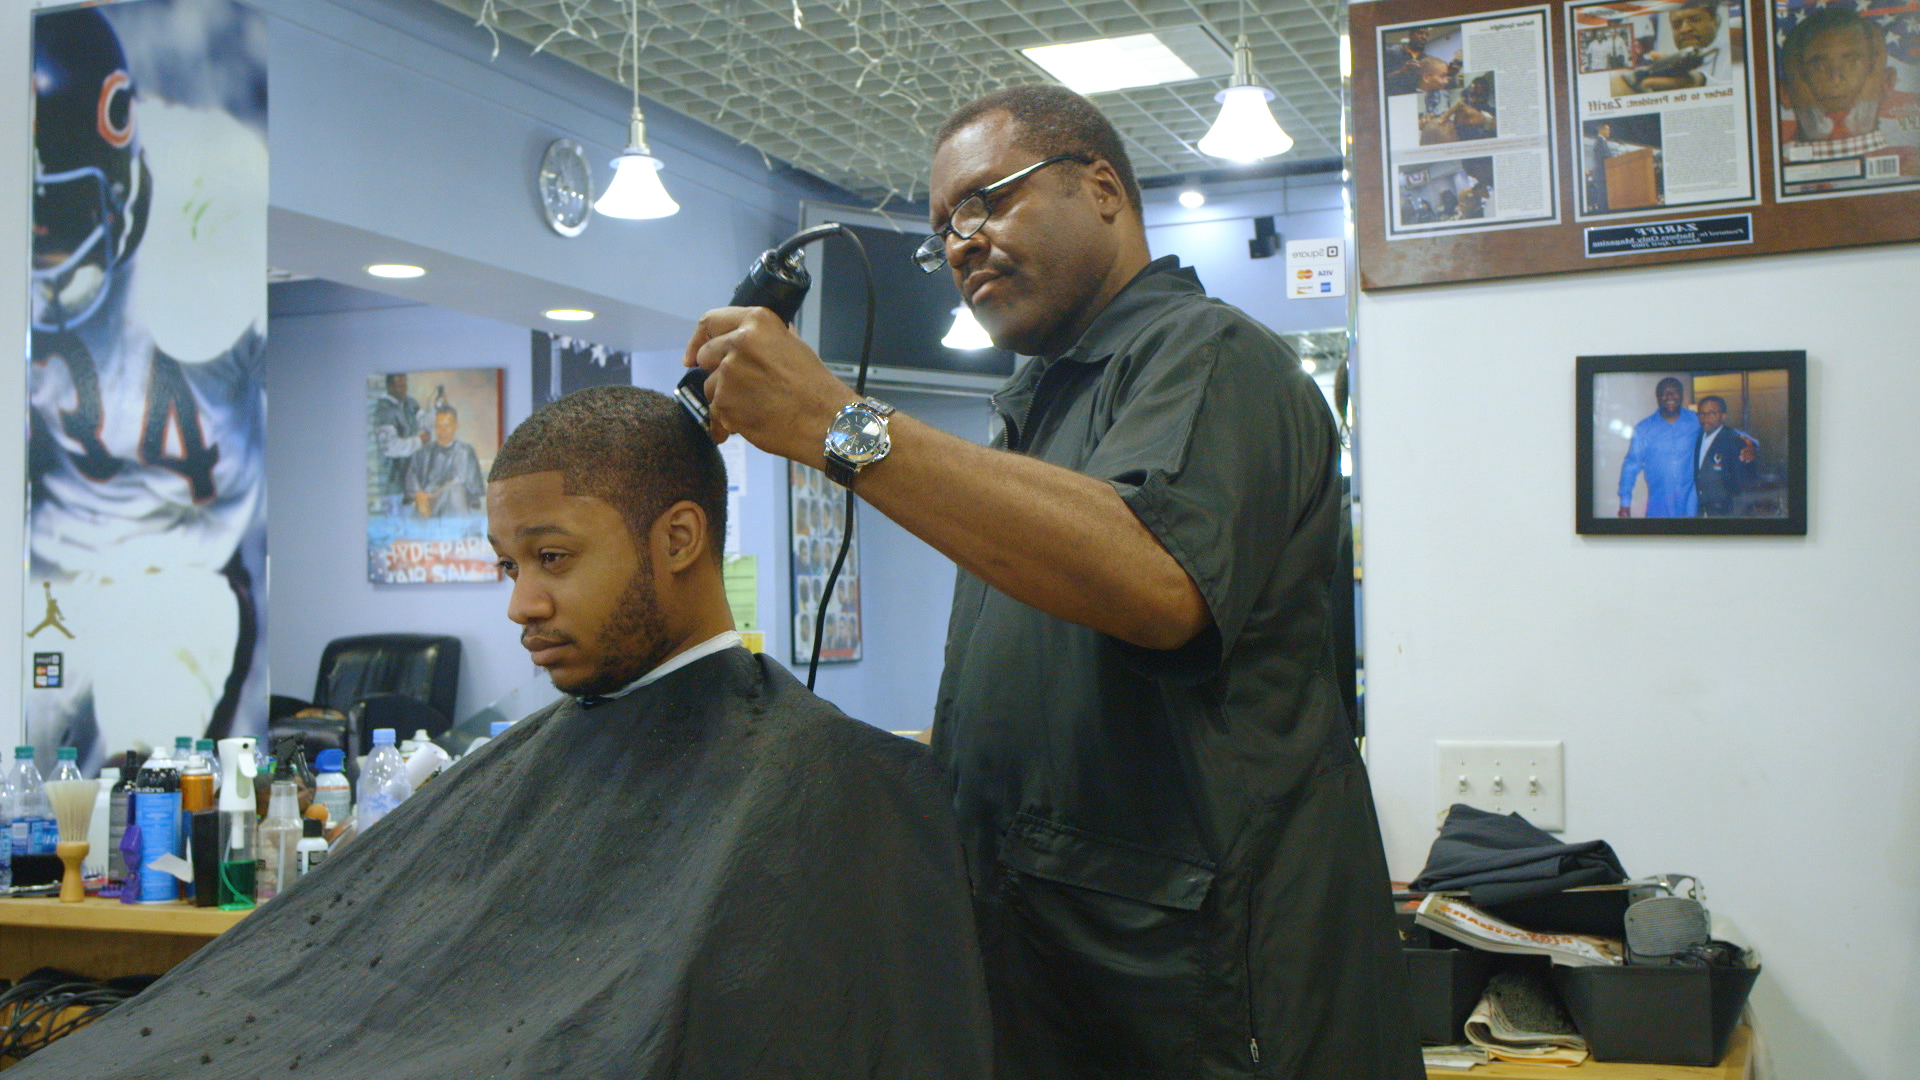 Meet The Man Who Has Cut President Obamas Hair For Nearly 20 Years